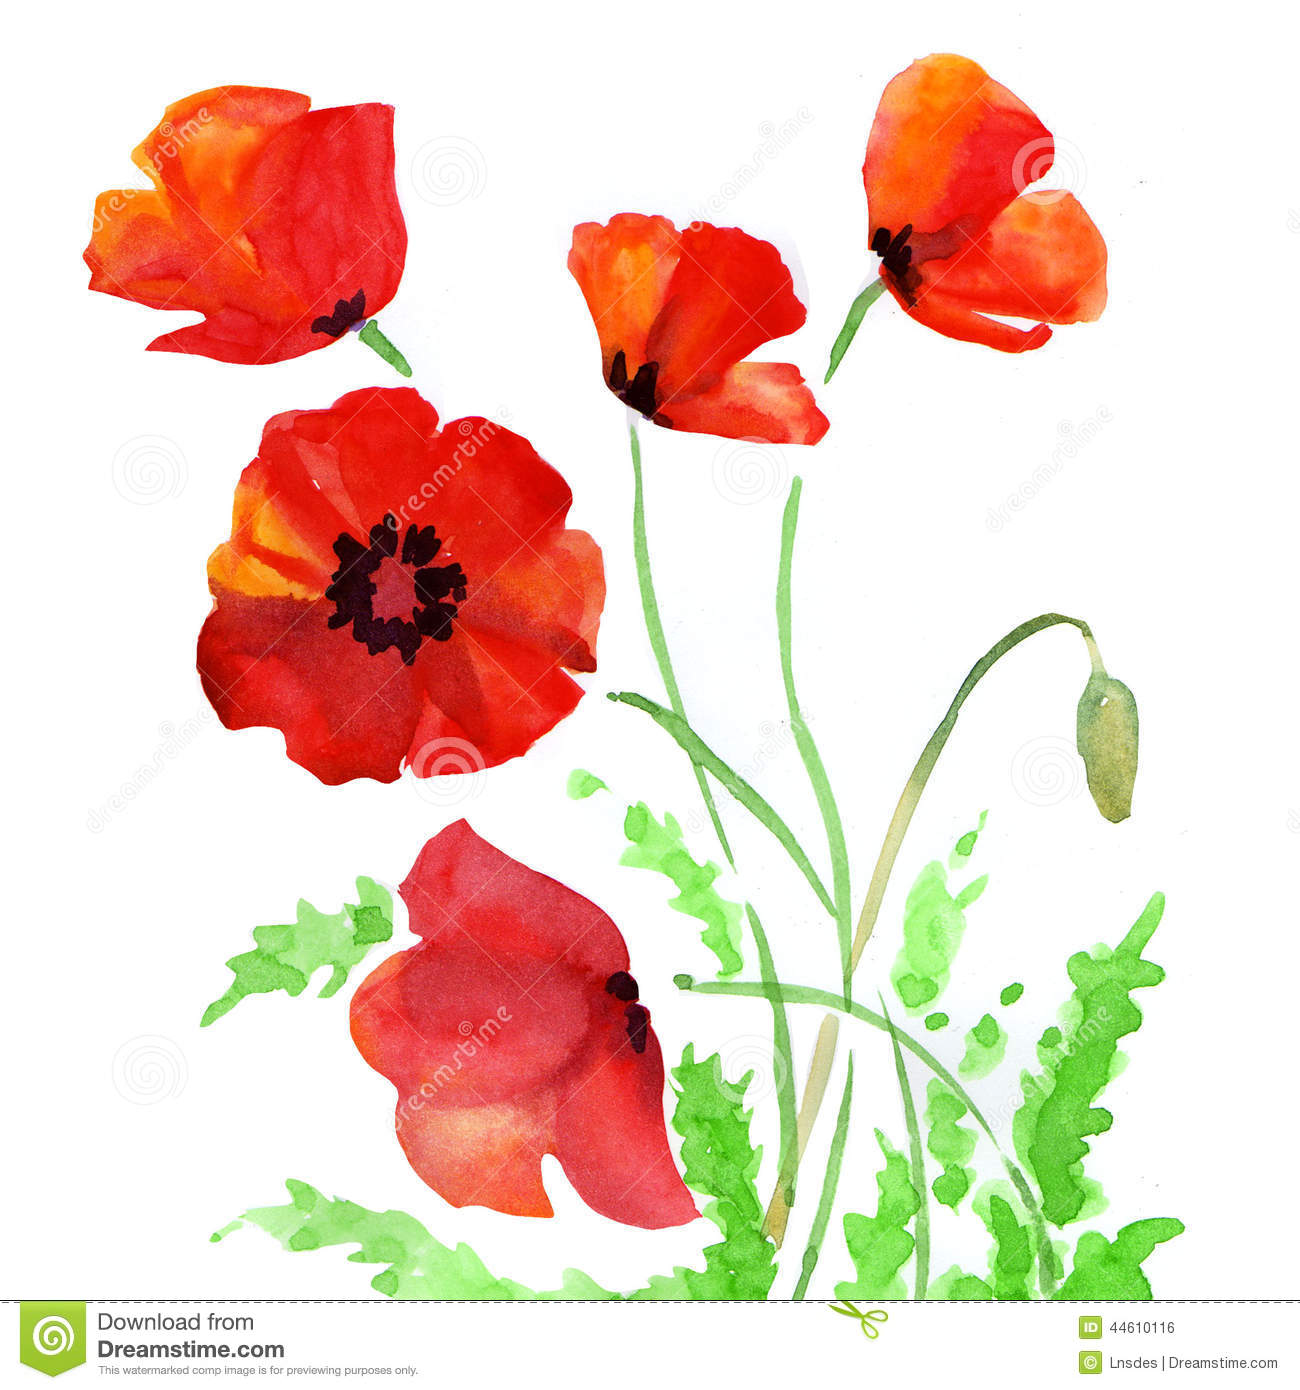 Poppy flowers watercolor illustration illustration 44610116 megapixl mightylinksfo